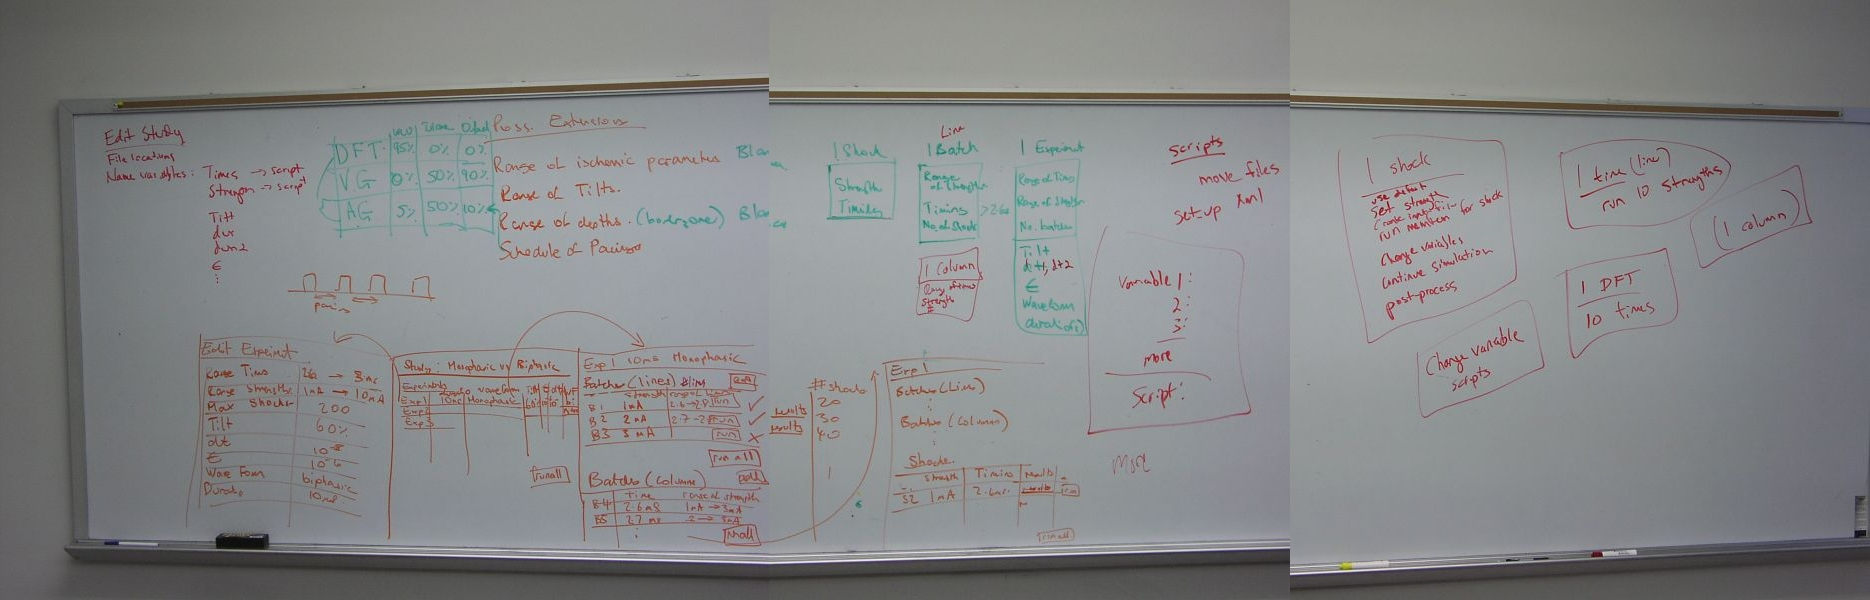 User interface storyboarding session at the Virtual Heart Lab